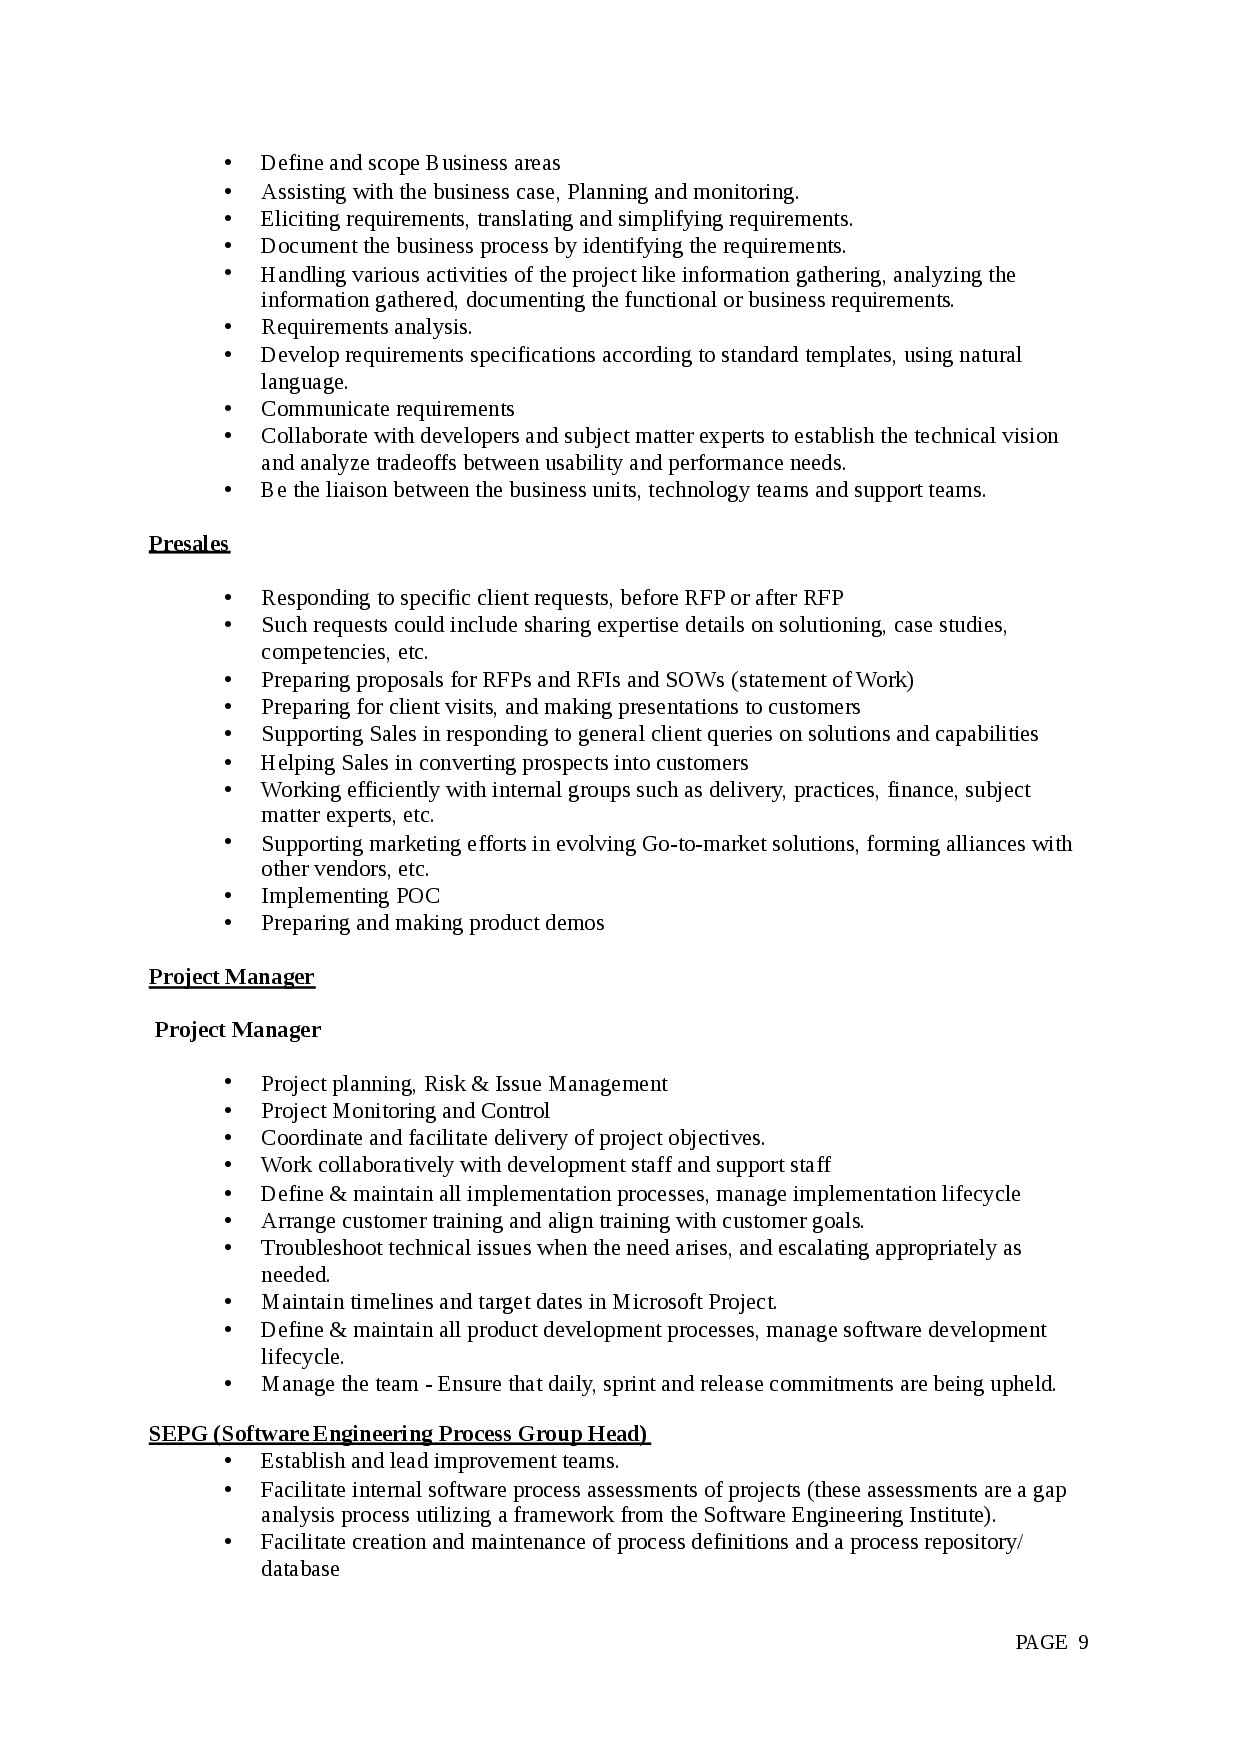 agile business analyst resume example-Agile Business Analyst Resume 16-n